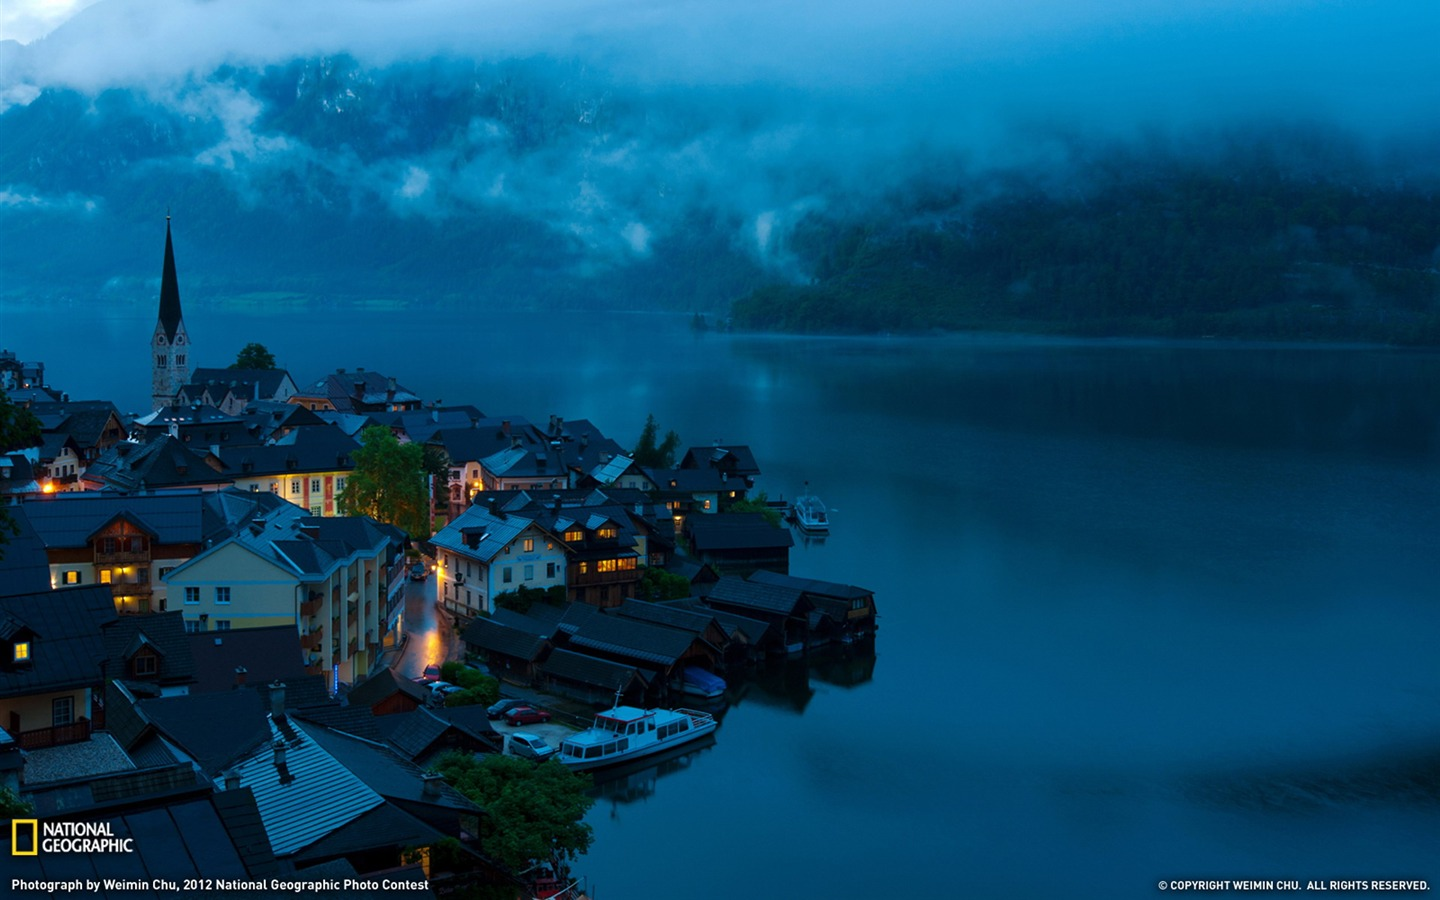 Wallpaper download national geographic - Hallstatt Austria National Geographic Photography Wallpaper 1440x900 Wallpaper Download